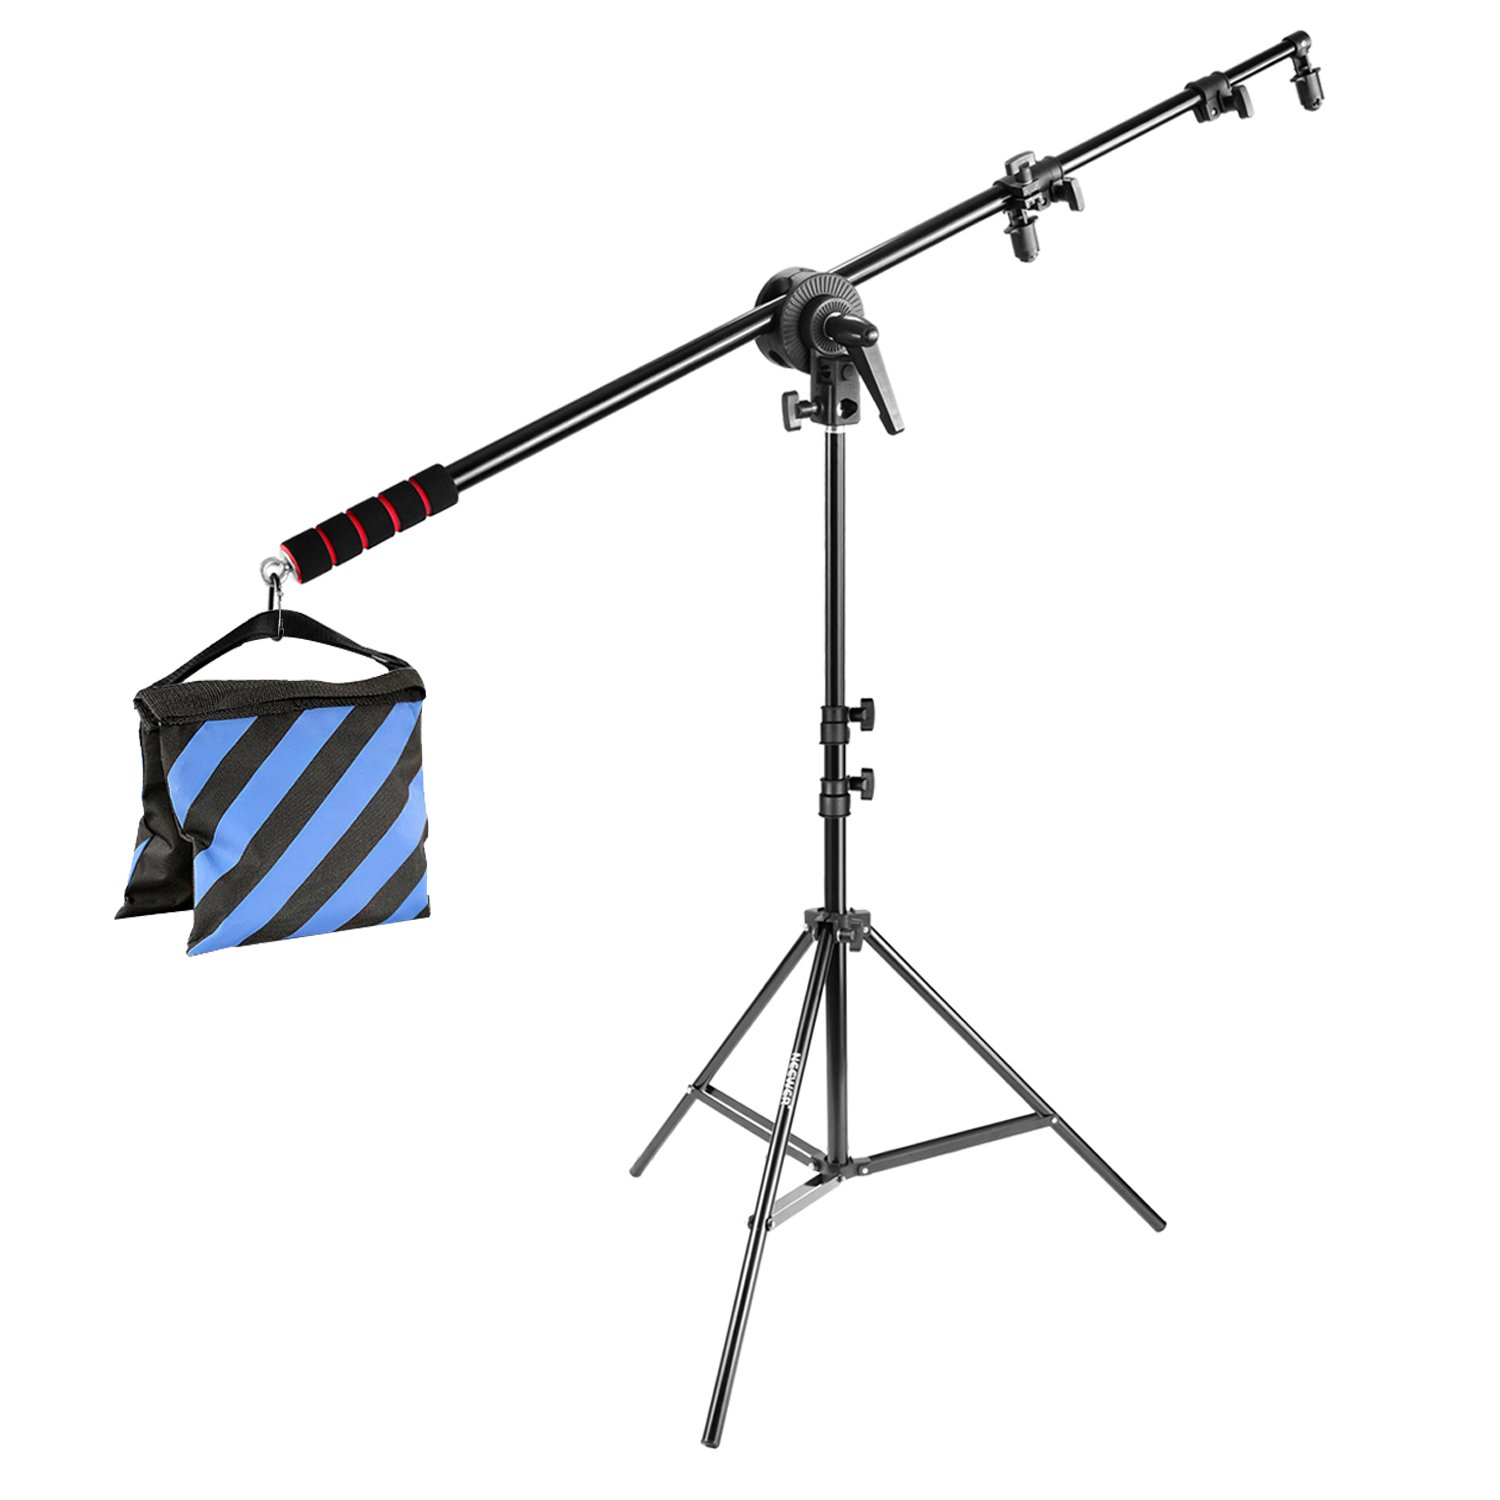 Neewer Photo Studio Lighting Reflector Boom Arm Stand Kit:73 inches/185 centimeters Reflector Holder Bracket with Rubber Handle Grip, 75 inches/190 centimeters Light Stand,Adapter Clamp Pivot, Sandbag 10087777